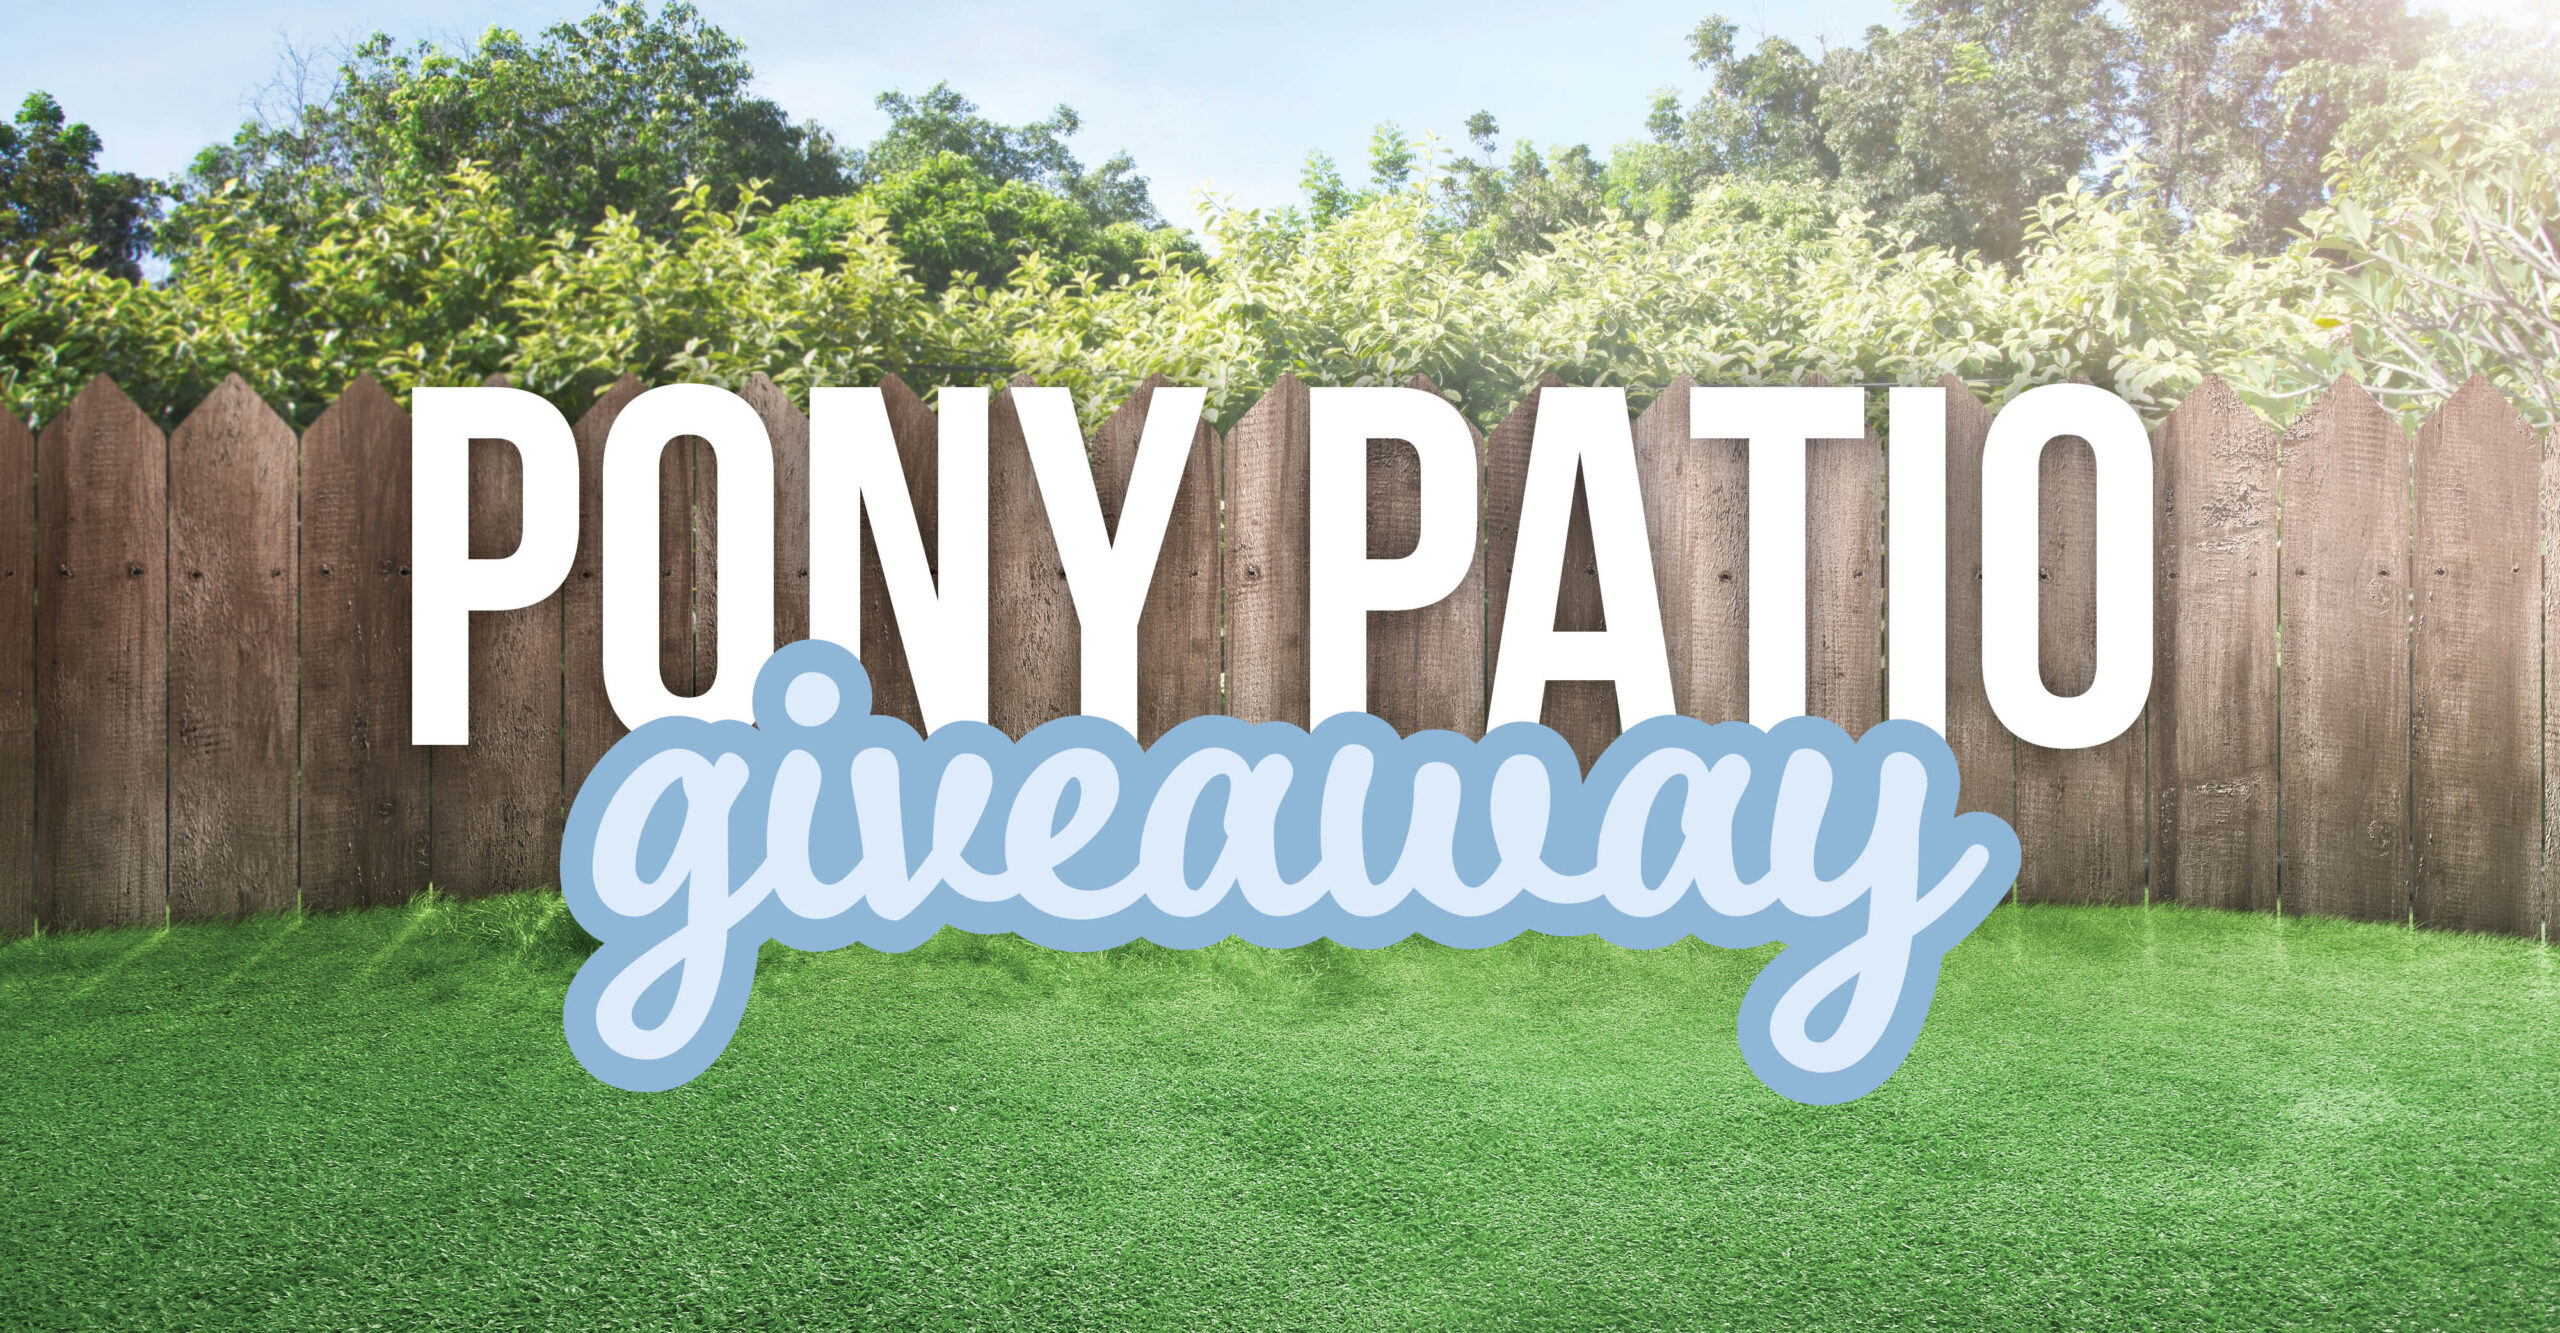 Golden Pony Casino May Pony Patio Giveaway